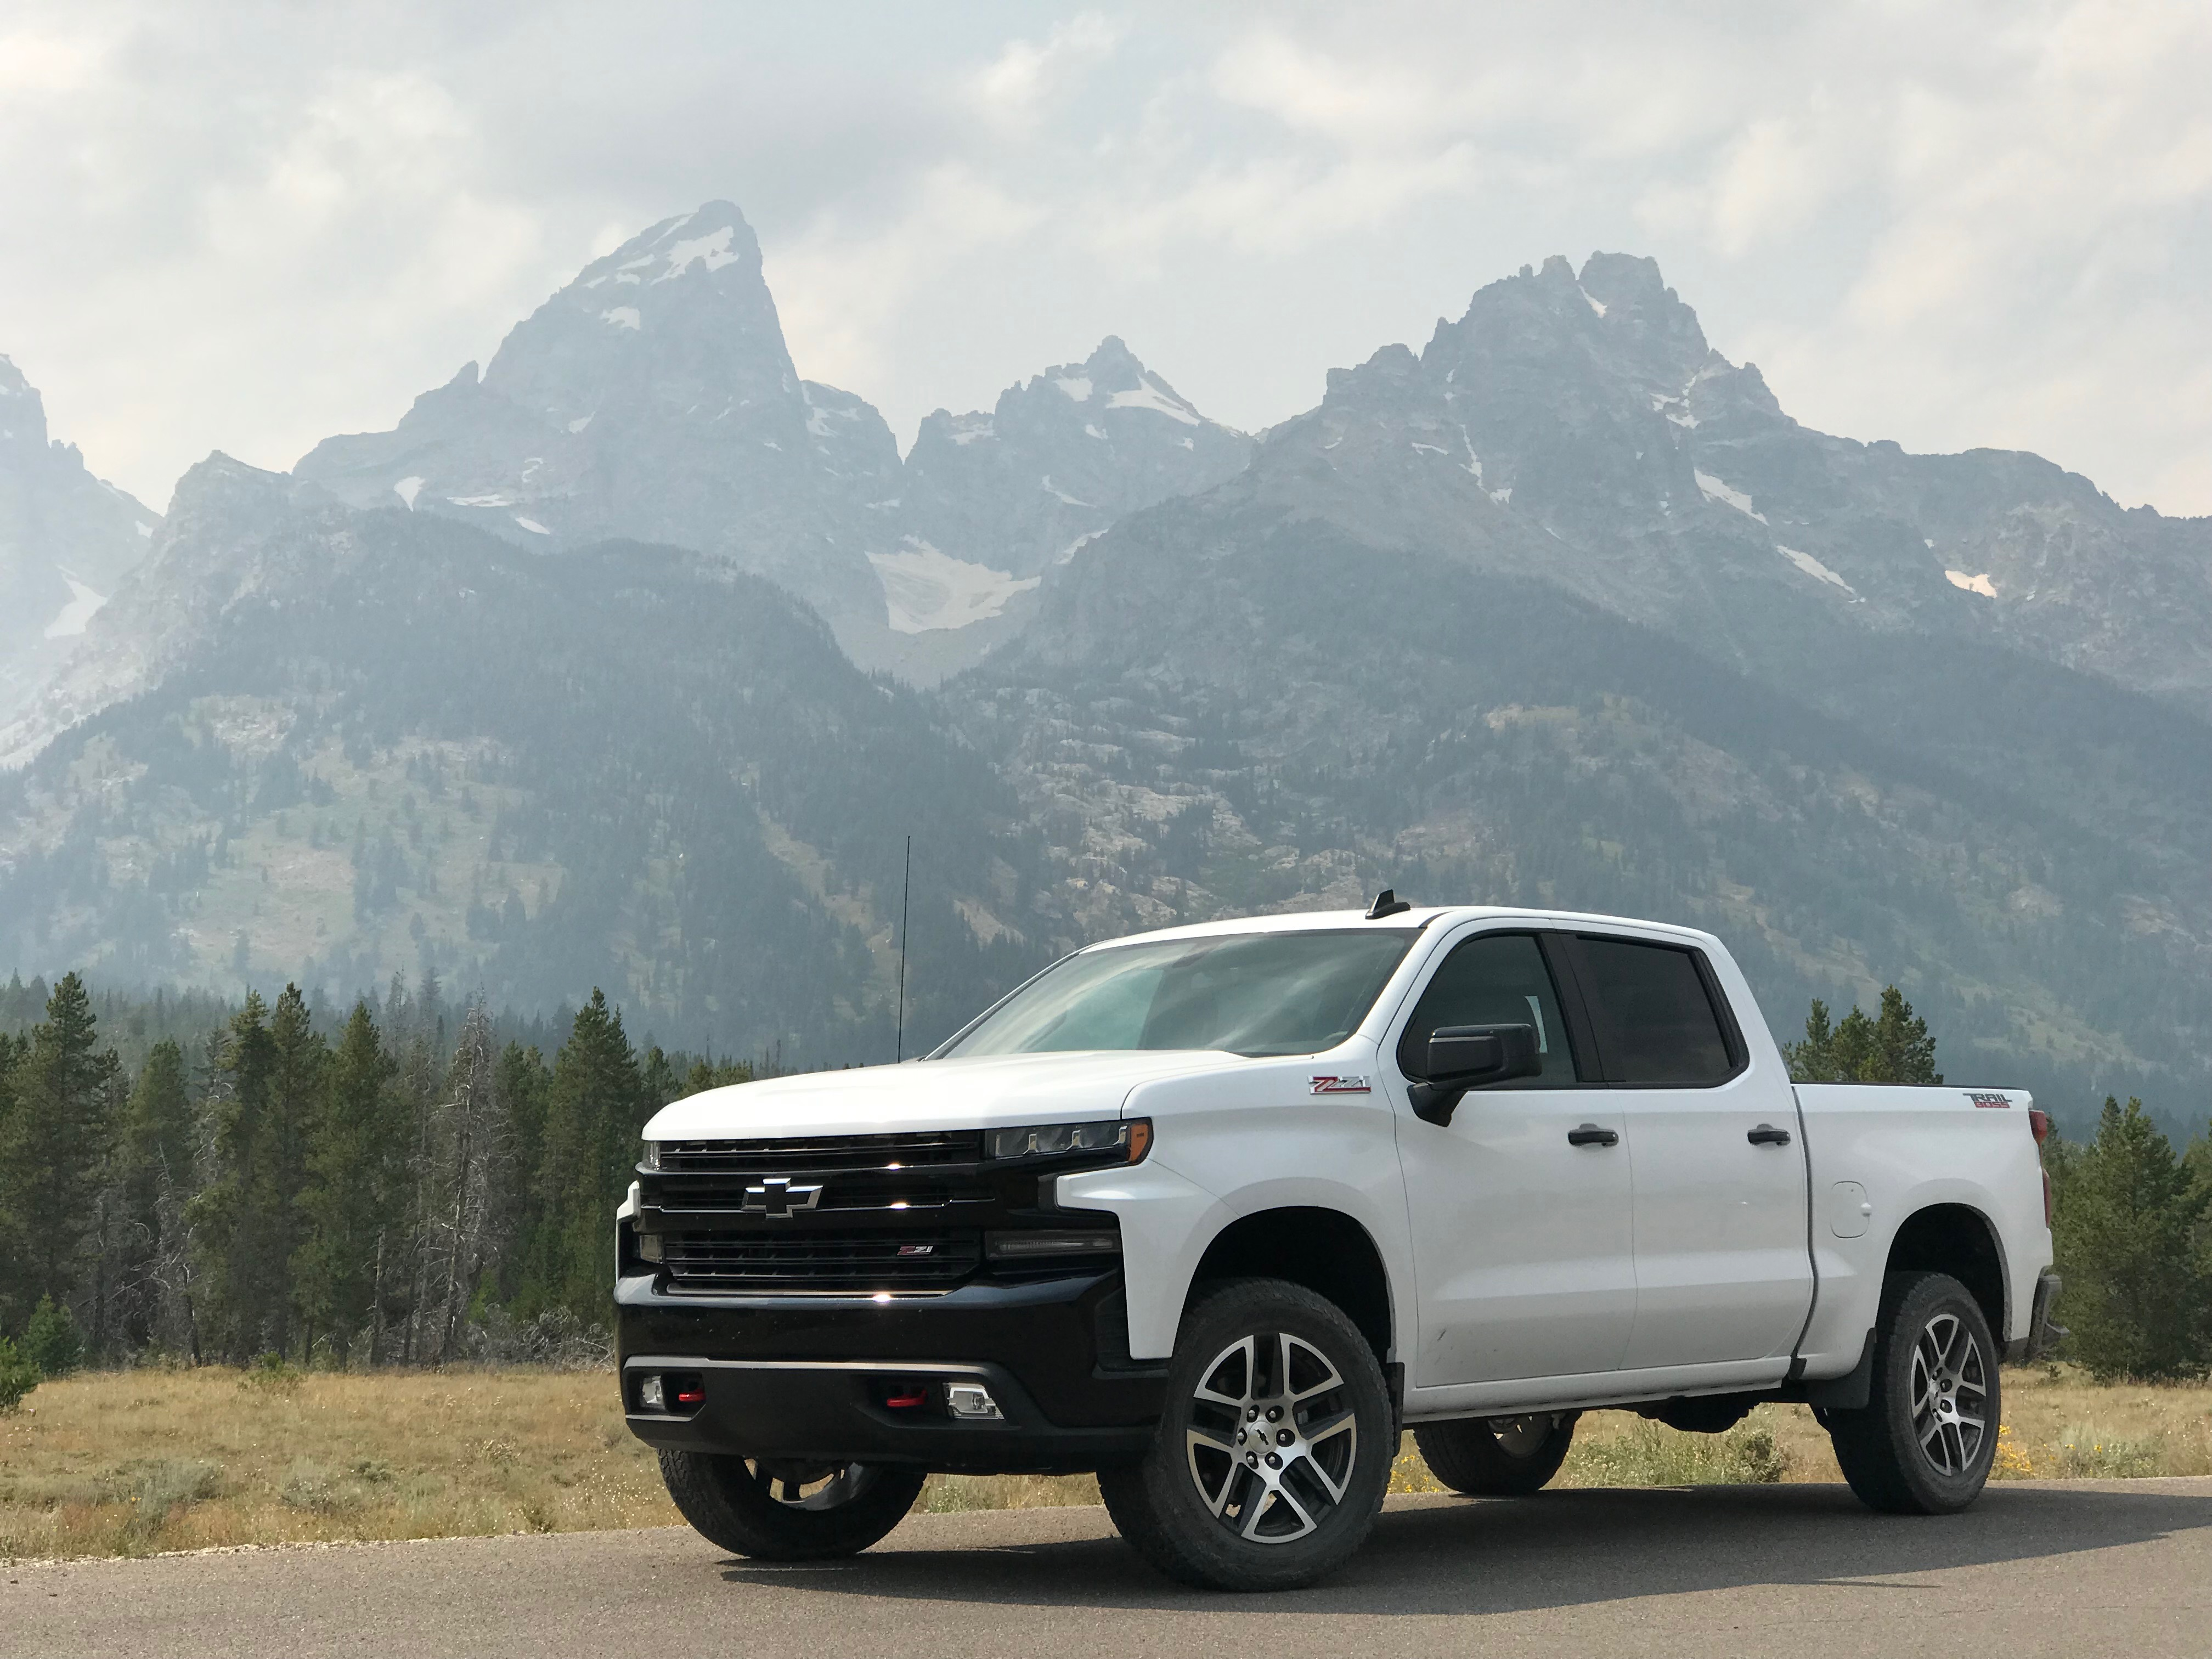 2019 Chevrolet Silverado First Drive: The People's Chevy Picks Up Changes Big and Small